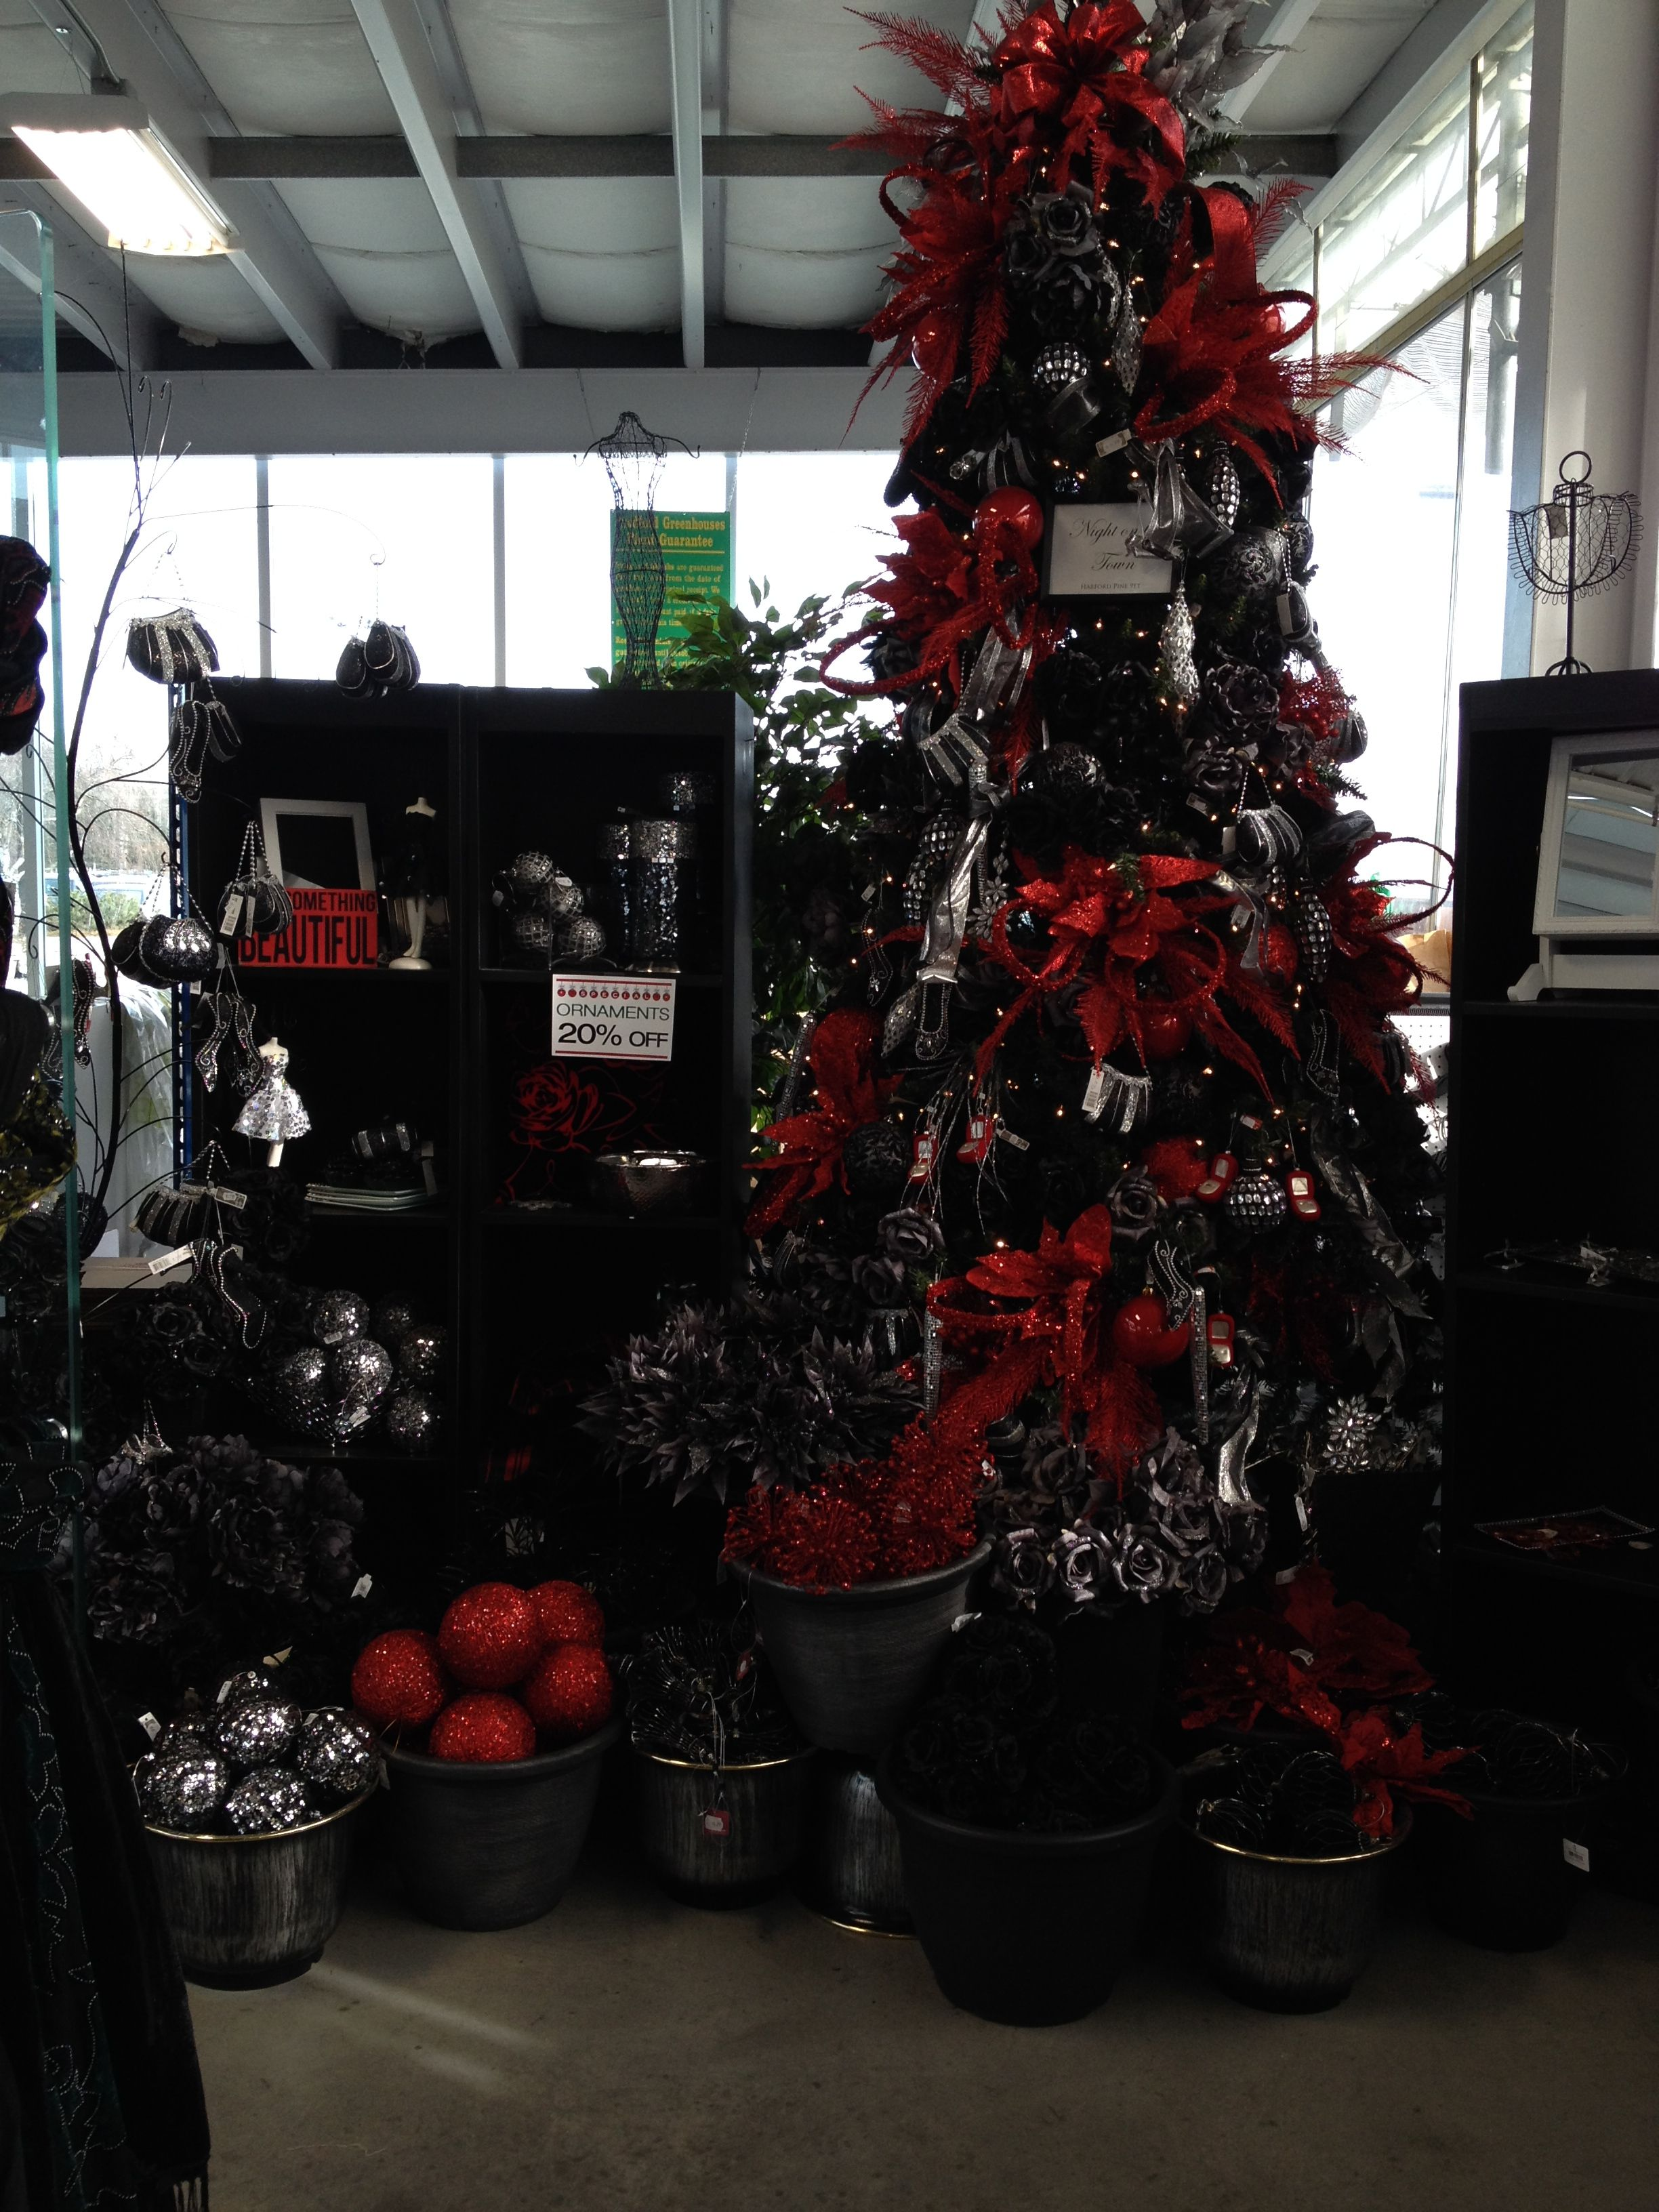 The Decorated Christmas Trees From Bradford Greenhouses